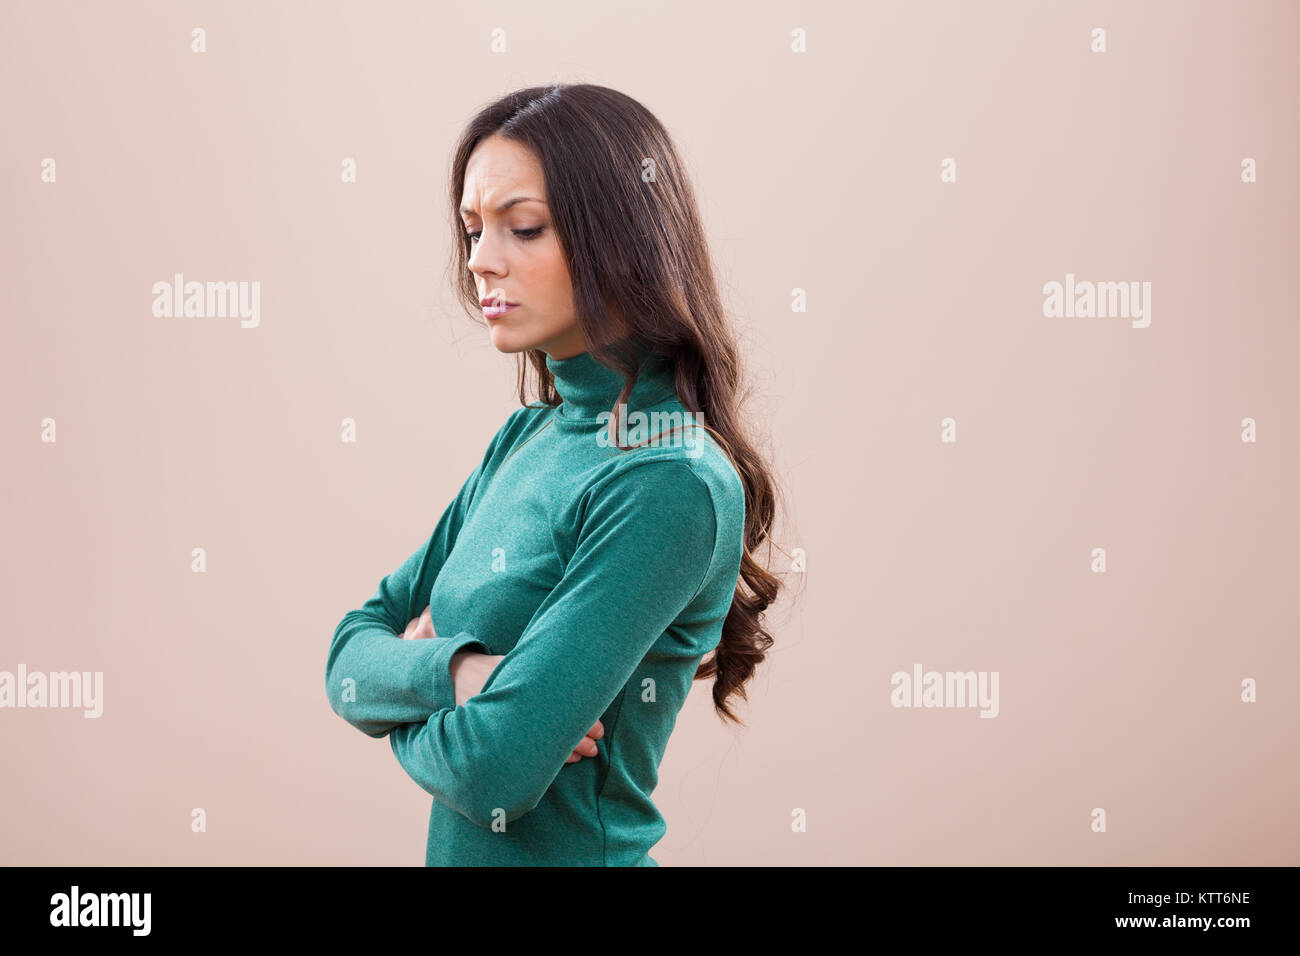 Portrait of displeased and angry woman - Stock Image